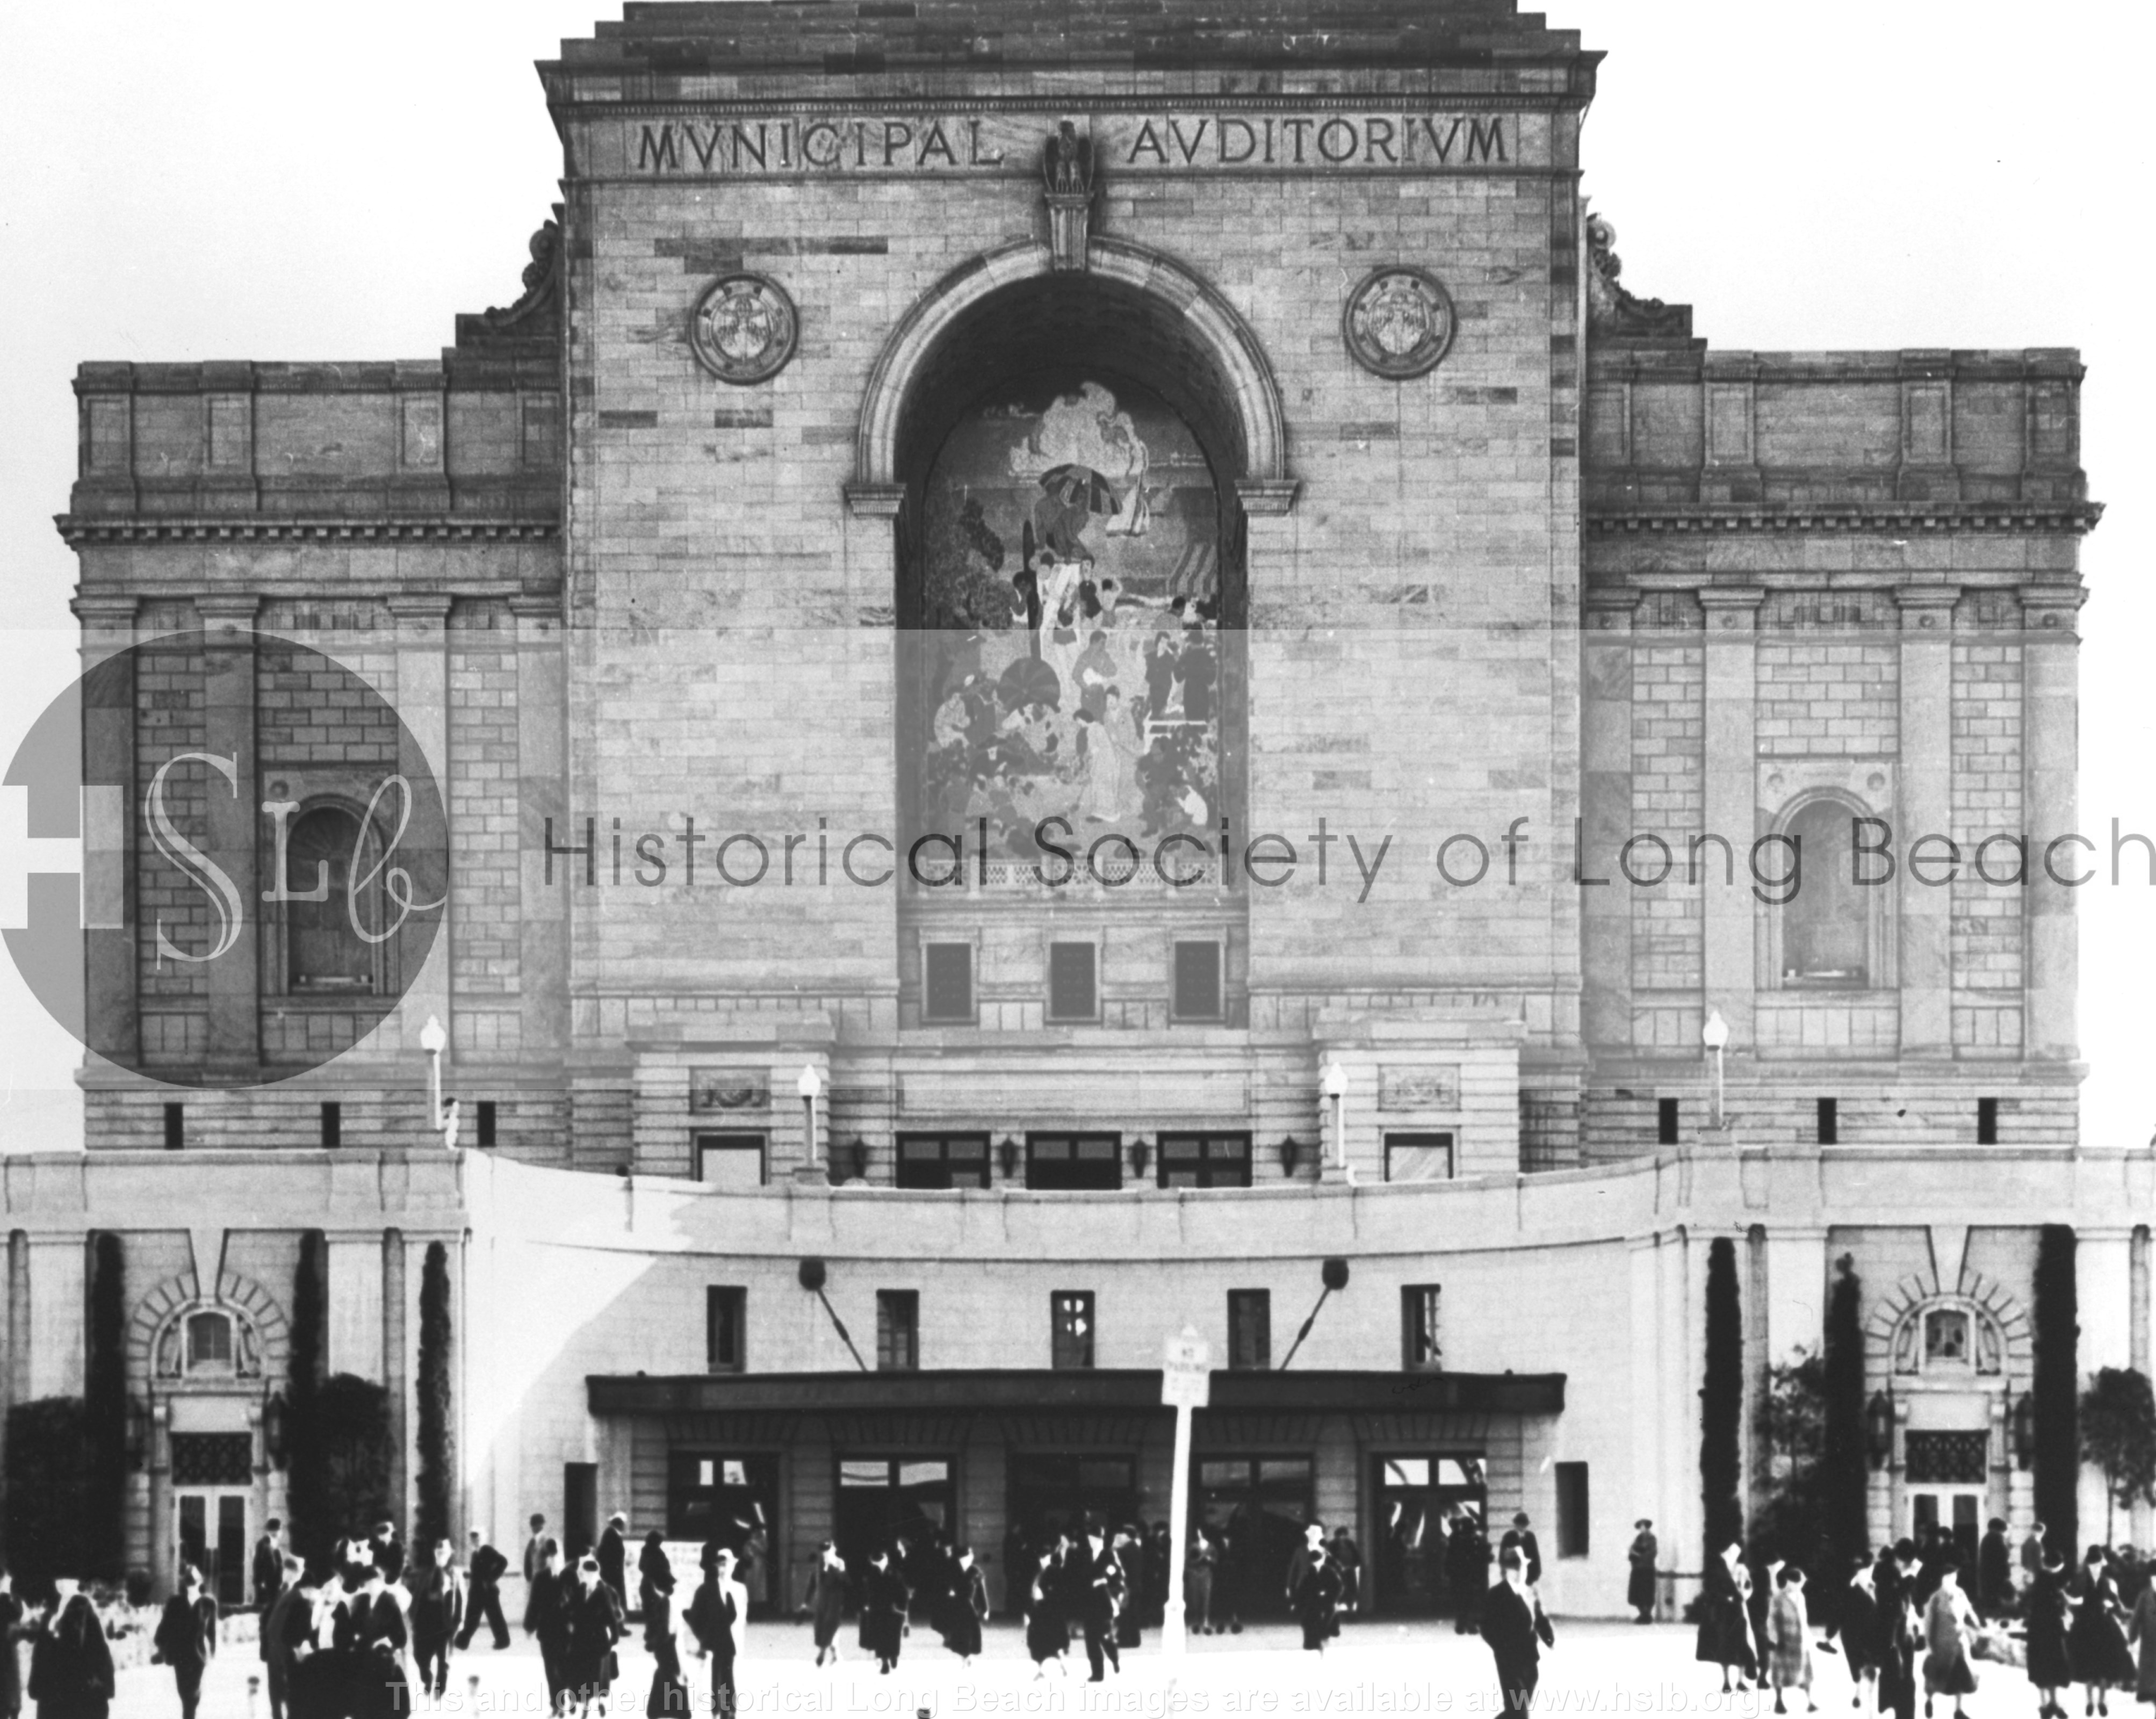 Municipal Auditorium mosaic, 1939 vintage photograph